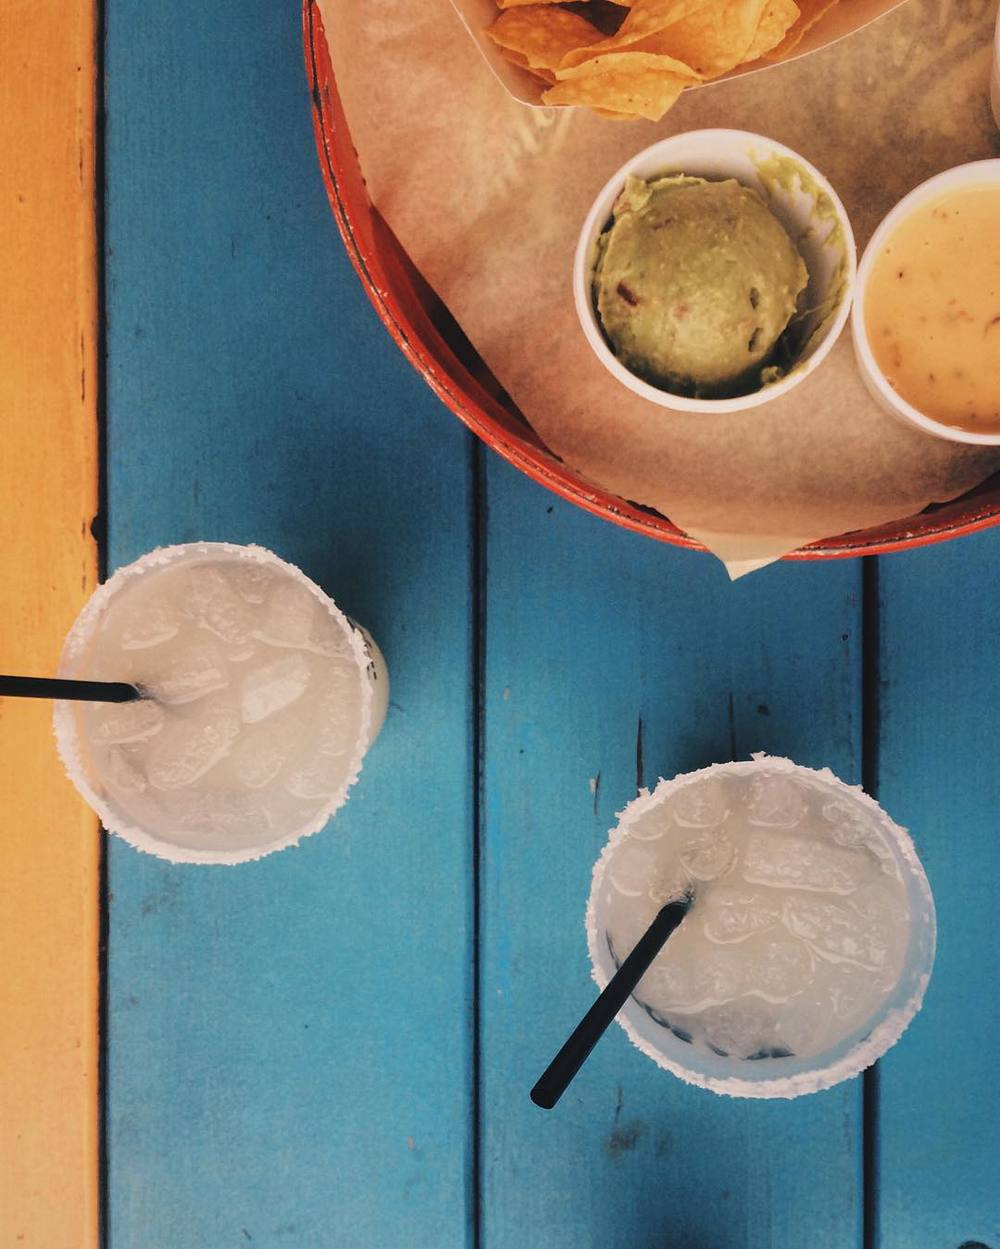 Last Monday was National Margarita Day. We hope you celebrated in style. We did some research for an upcoming post on some of our favorites. @wedentondoit